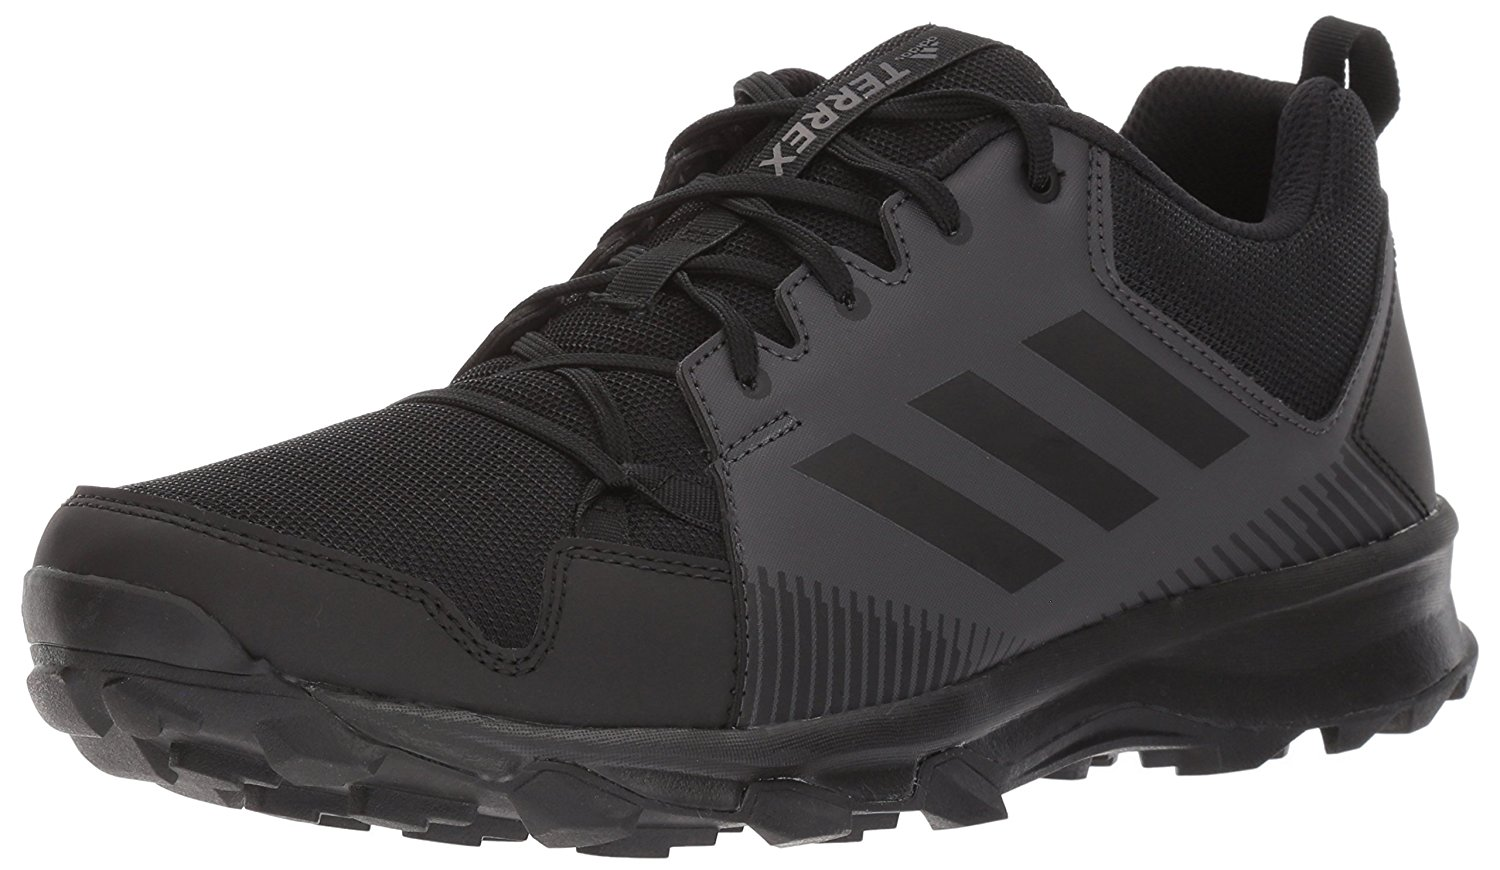 Adidas Tracerocker Tested for